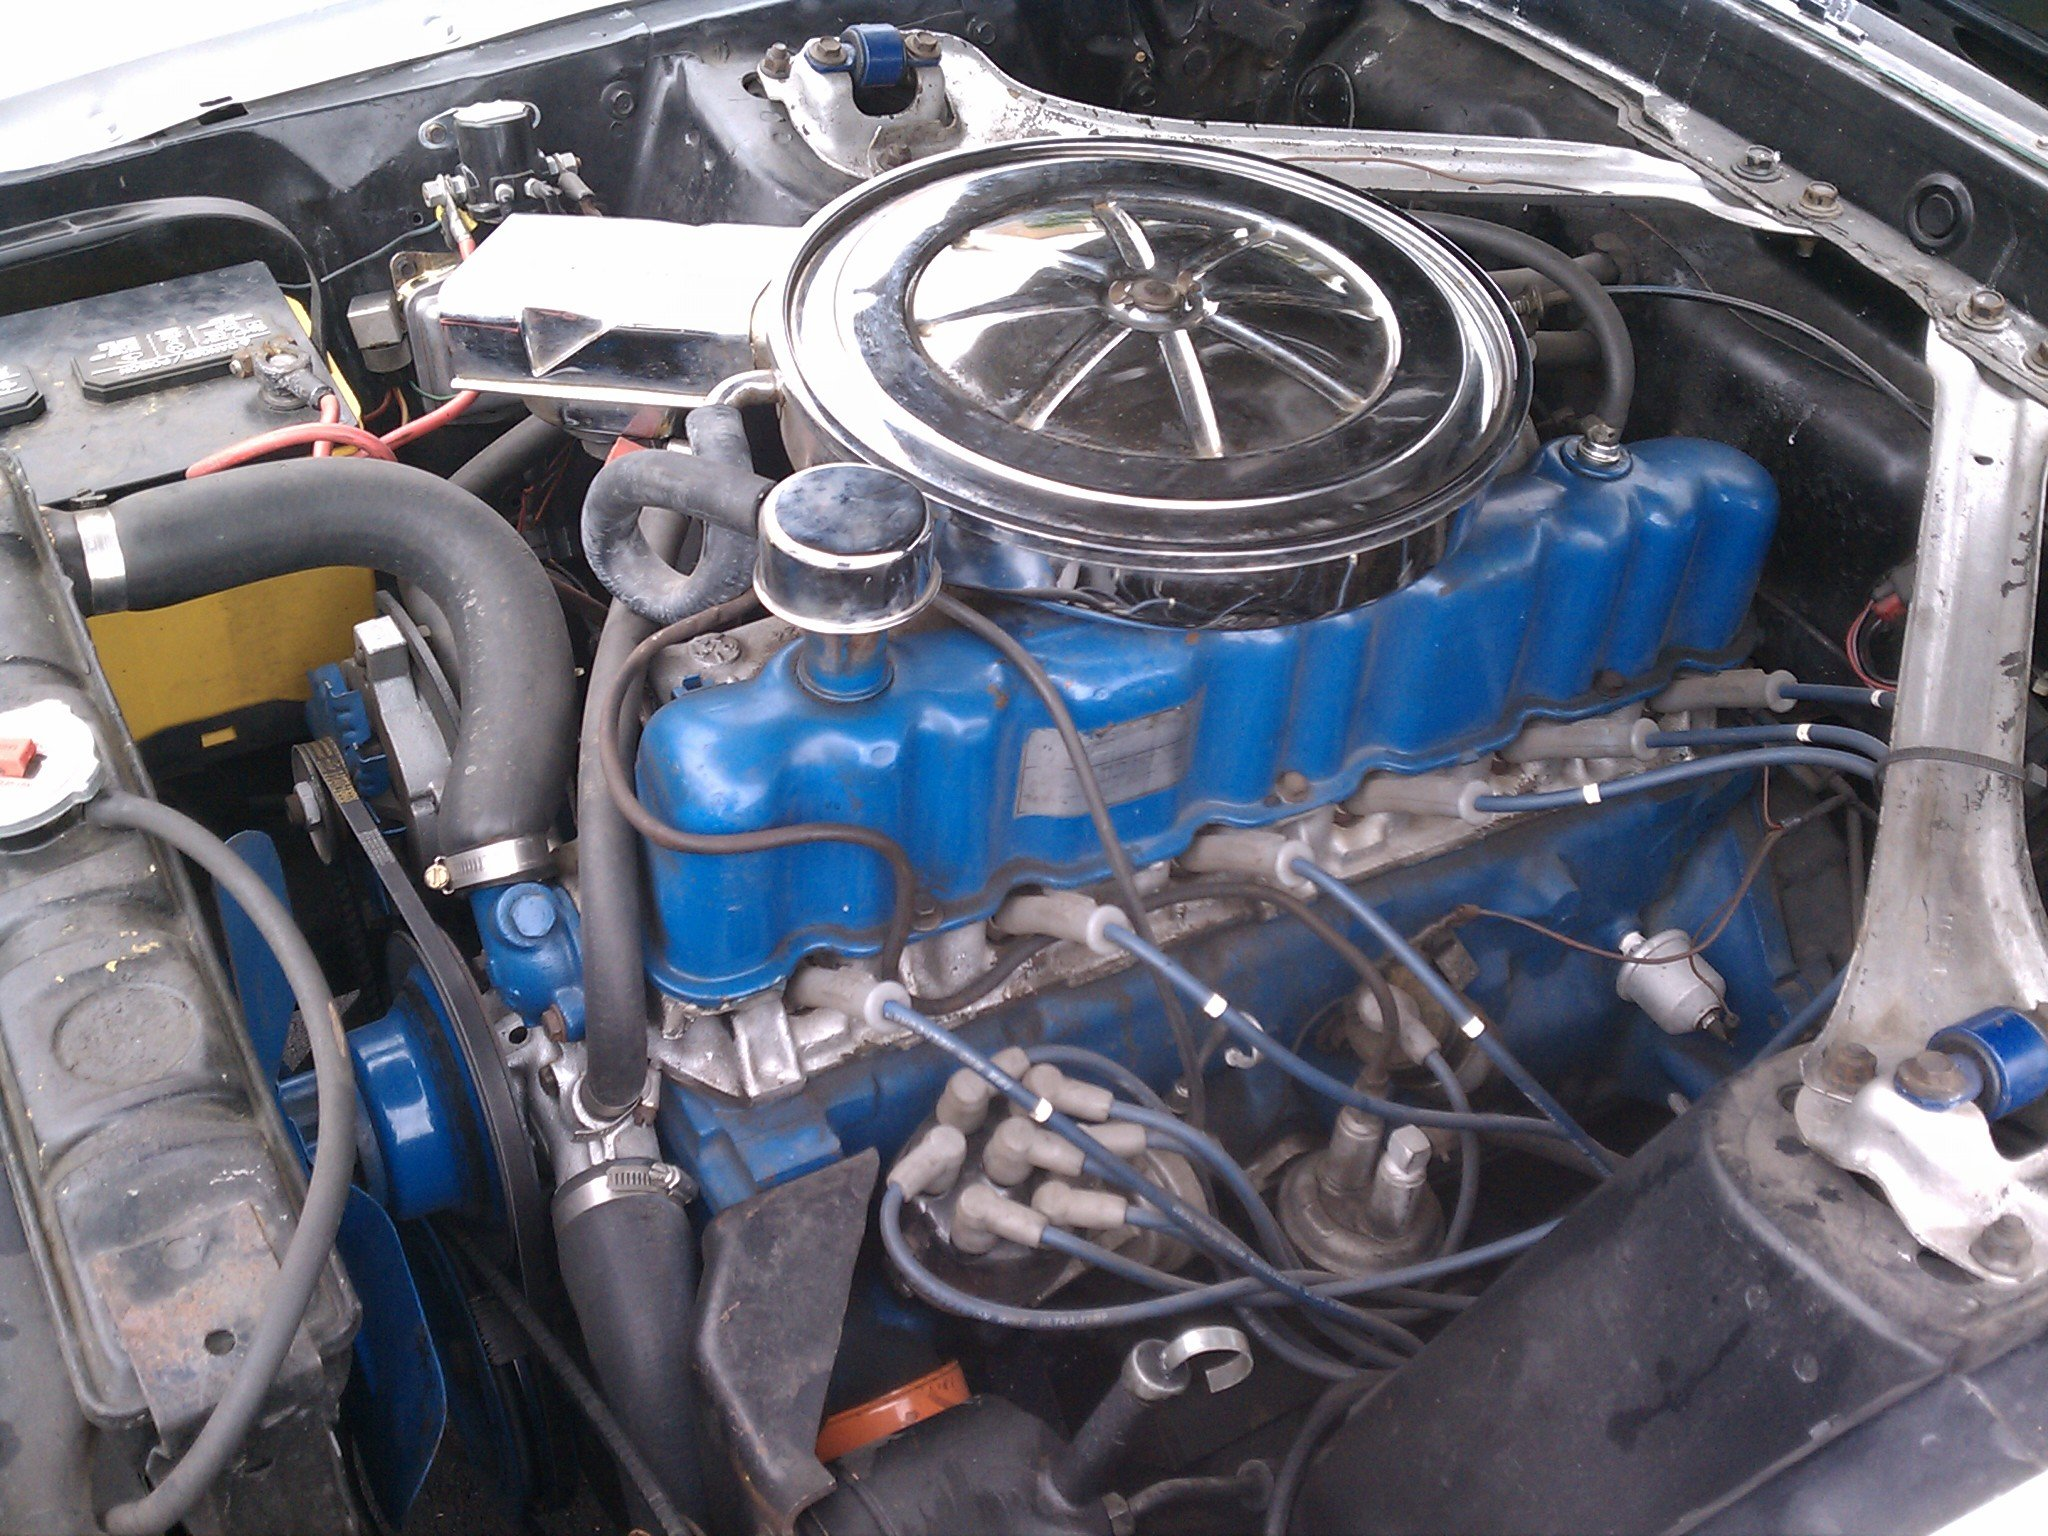 Ford 250 Inline 6 Head http://www.allfordmustangs.com/forums/classic-tech/278602-1969-mustang-250-4-1l-inline-6-questions-2.html